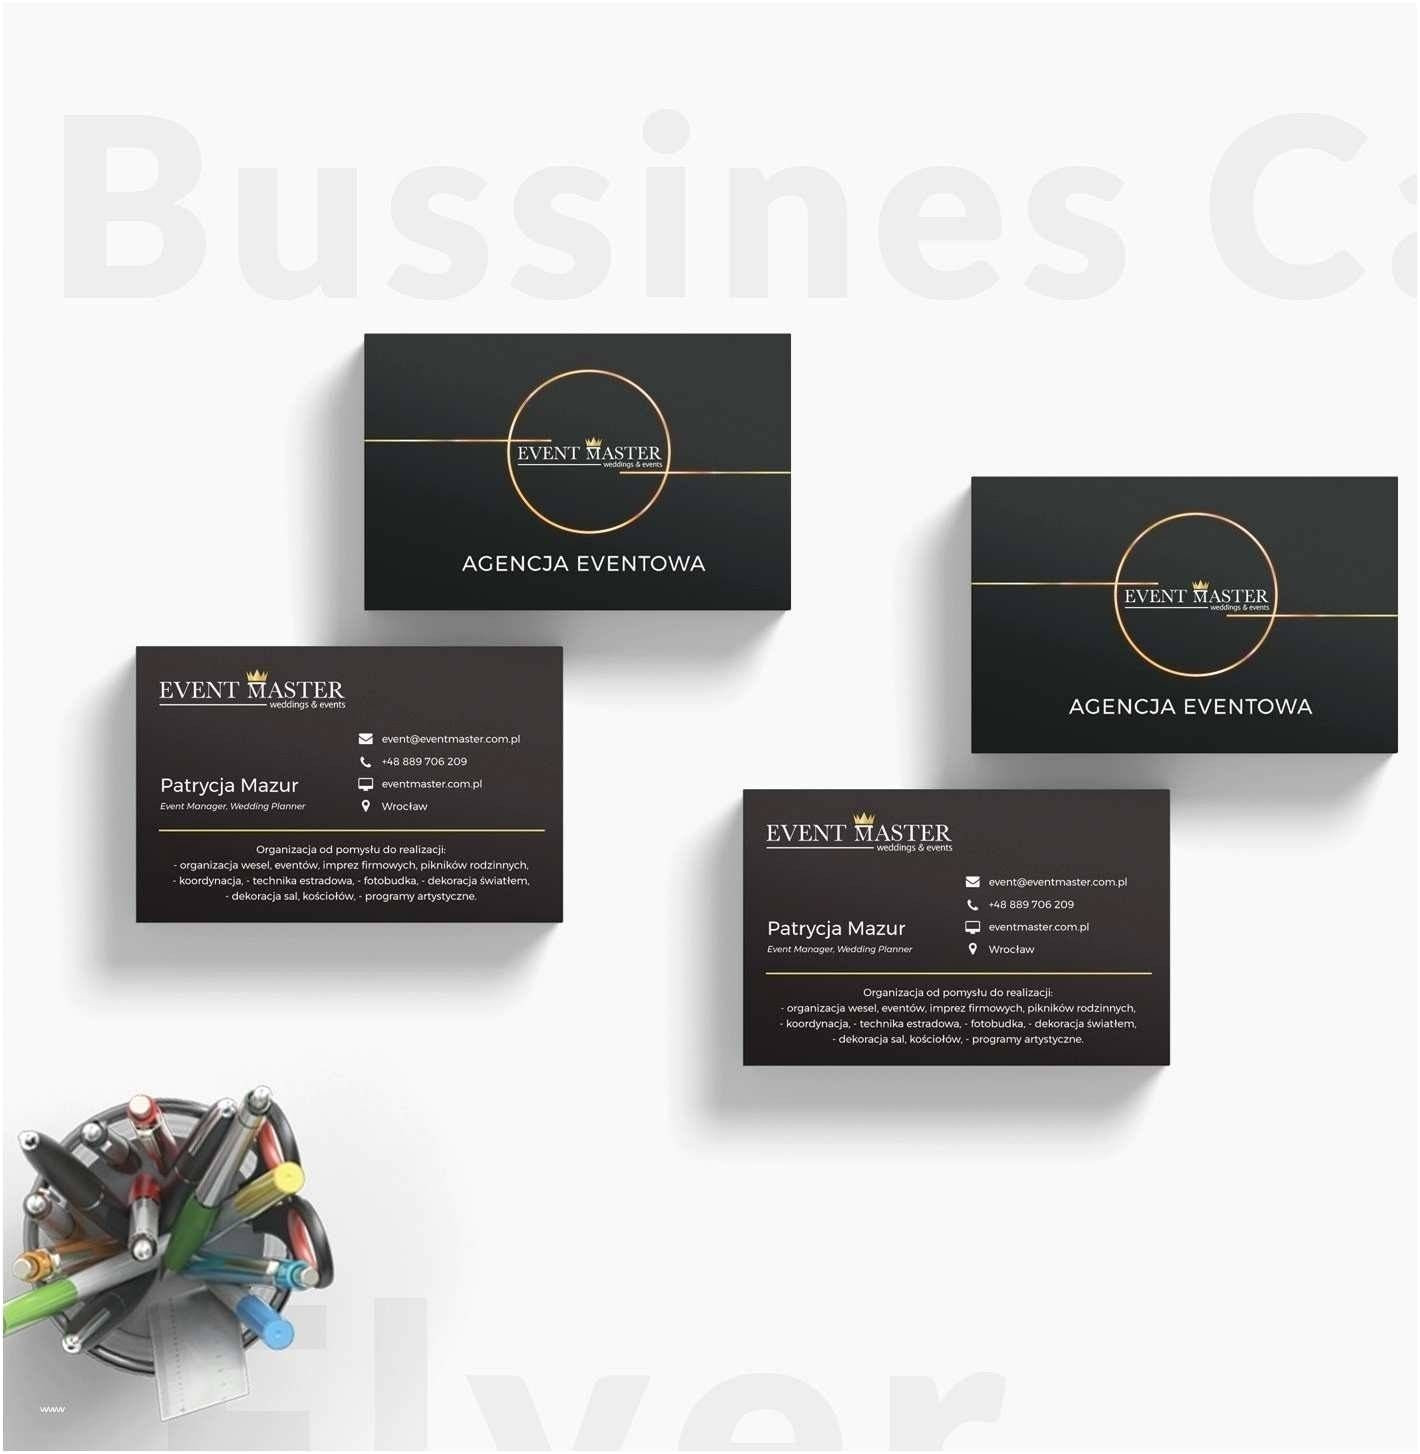 download can save at letter formats of patrick bateman business card template of patrick bateman business card template jpg